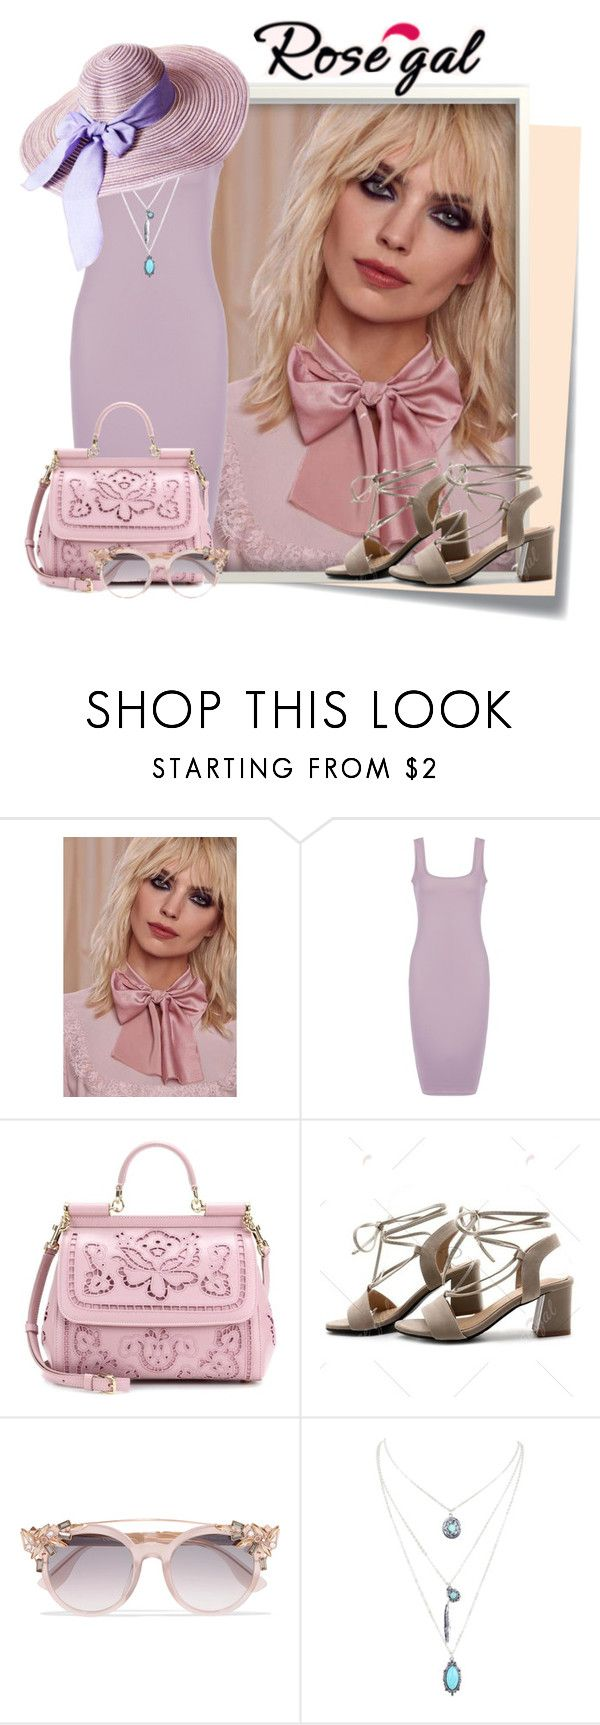 """rosegal 28"" by elenb ❤ liked on Polyvore featuring Post-It, Lena Bernard, Dolce&Gabbana, Jimmy Choo, dress, women and rosegal"